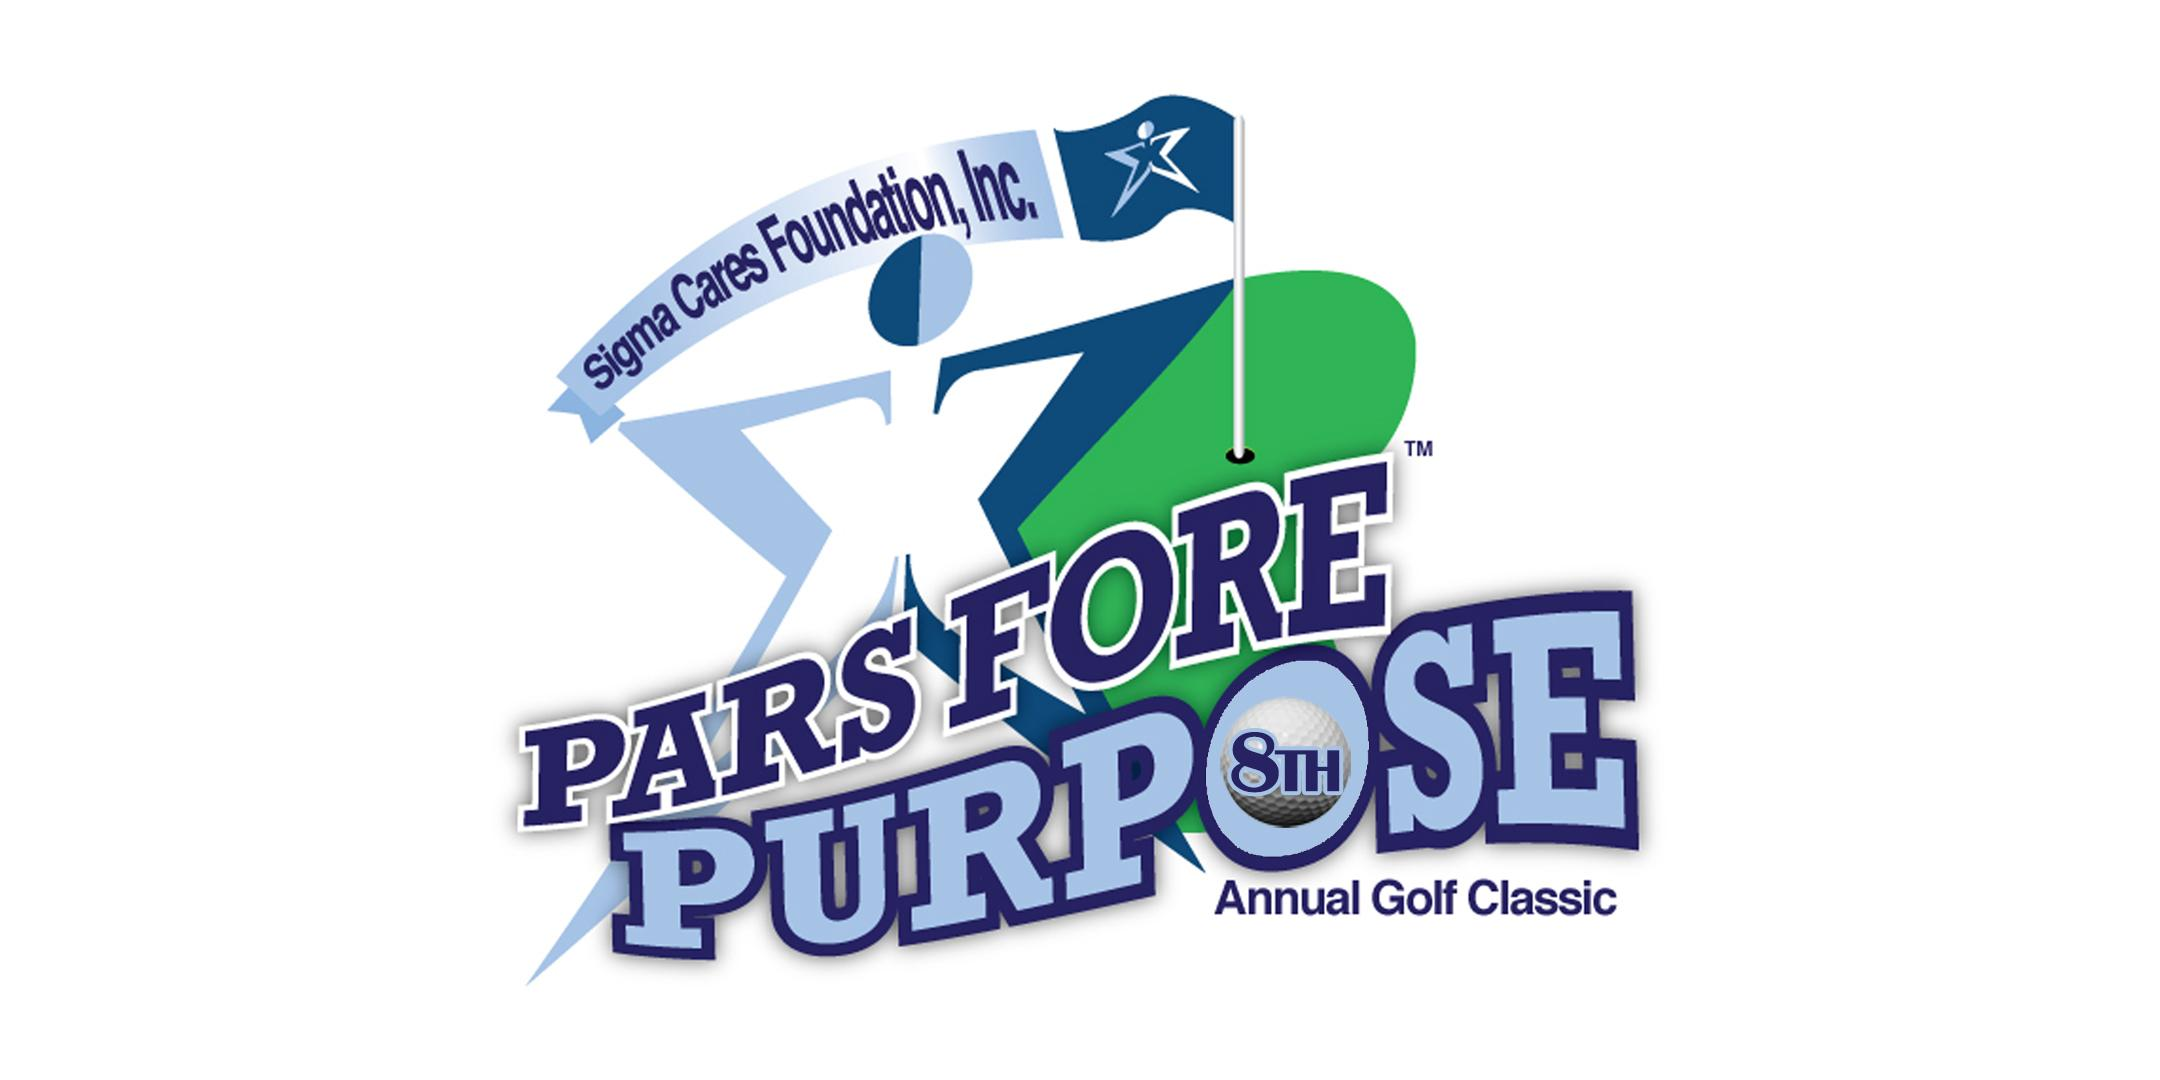 """8th Annual Sigma Cares Foundation """"Pars Fore Purpose"""" Golf Classic"""